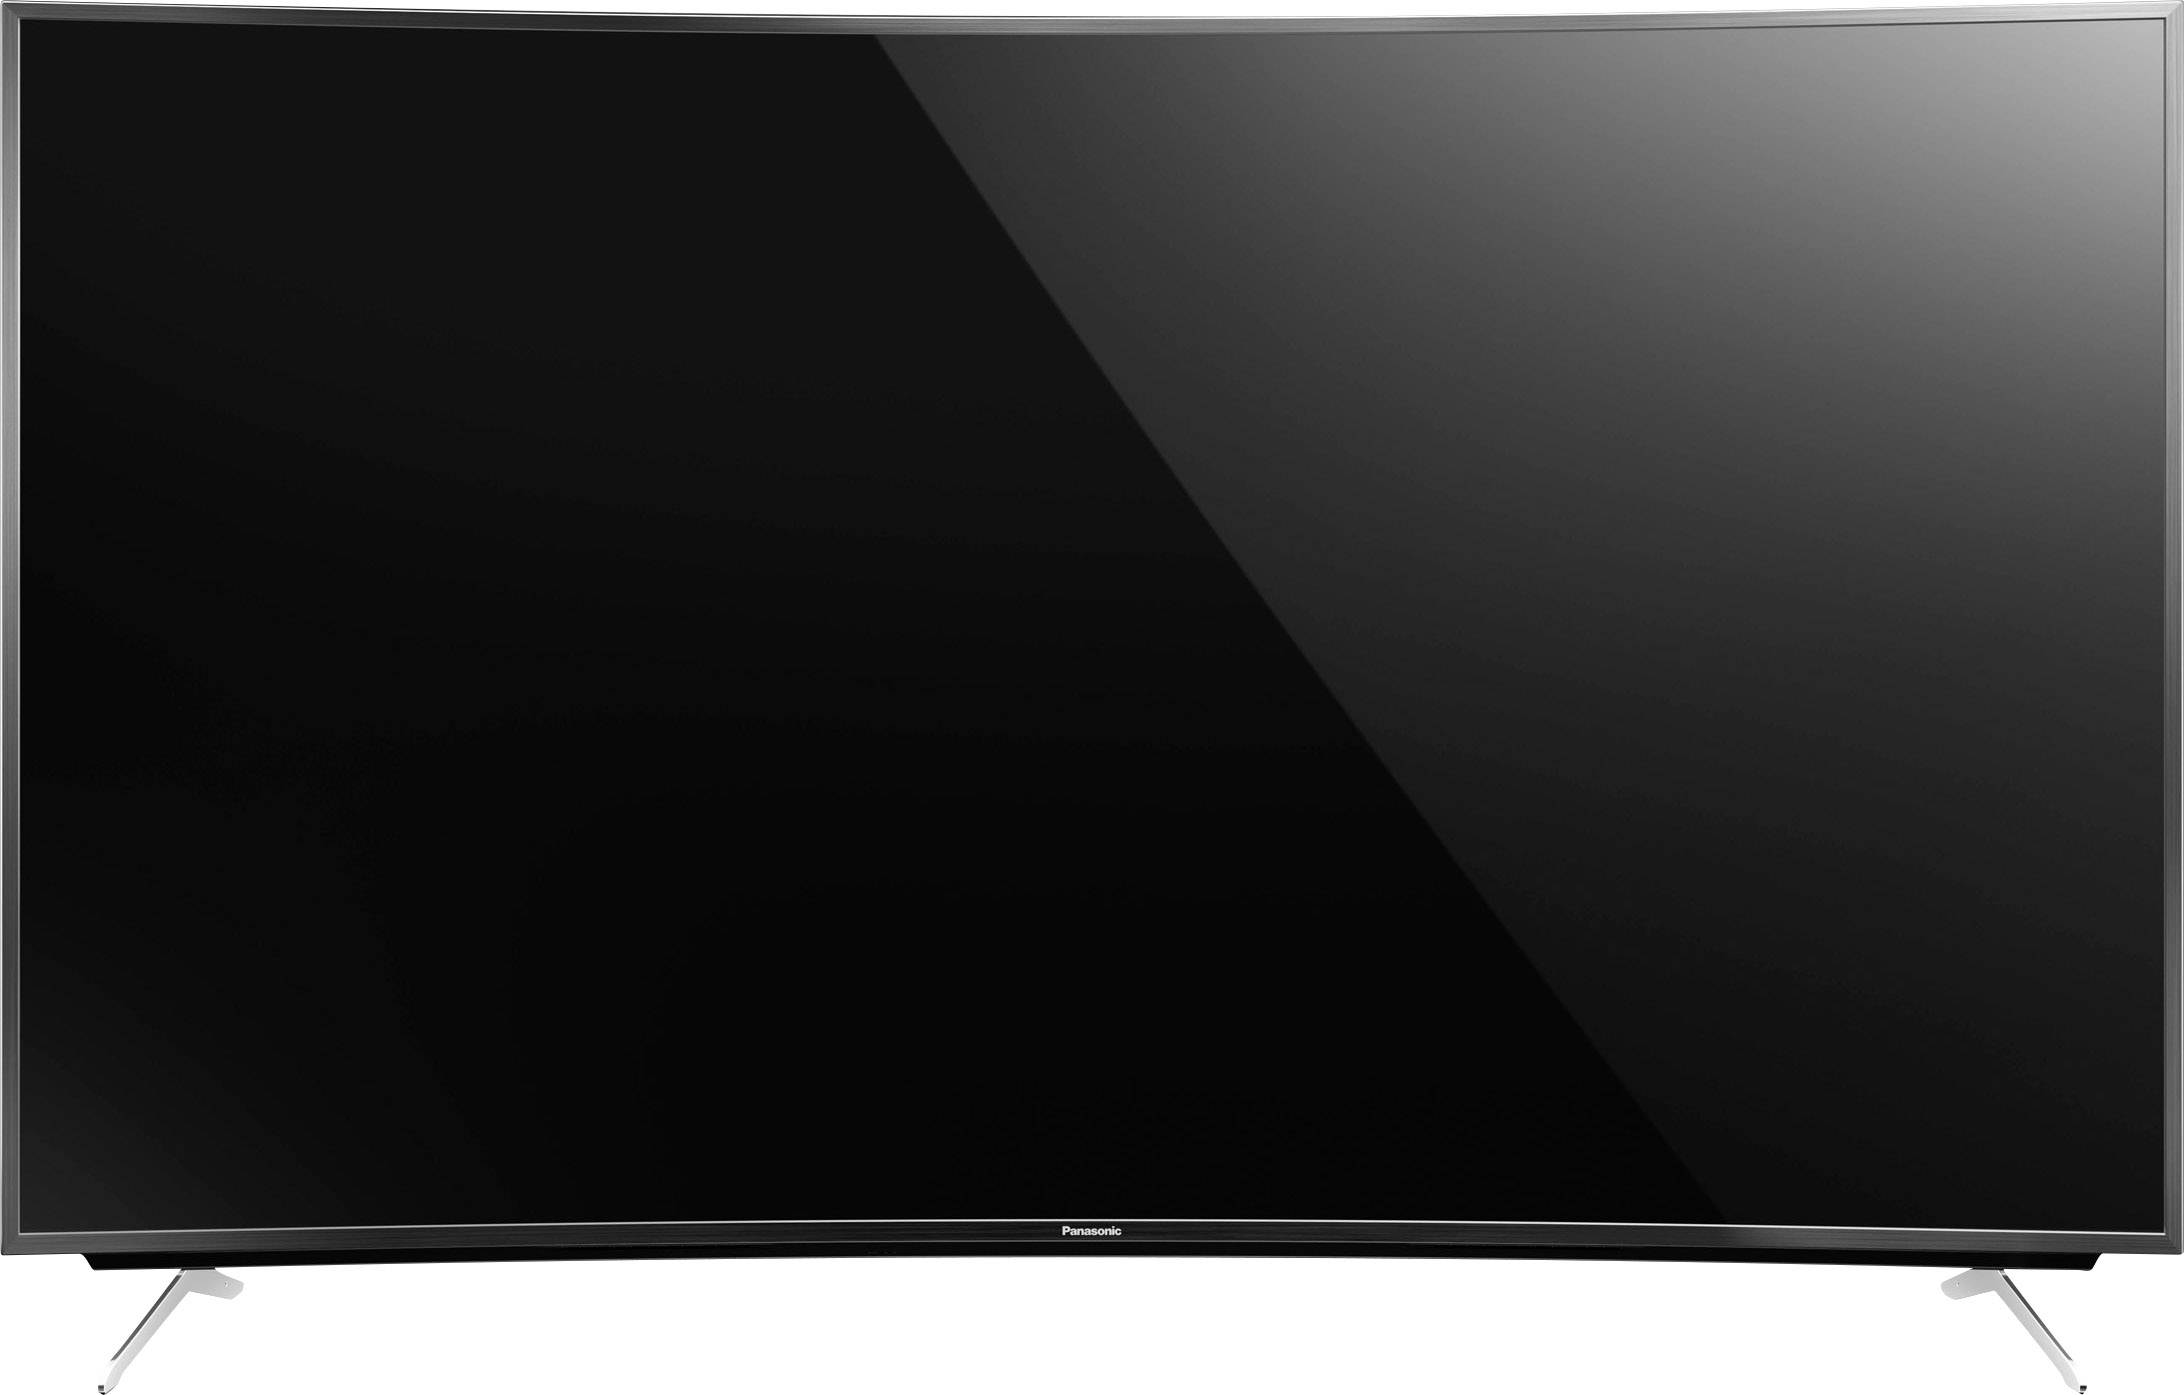 Panasonic Viera TX-65CRW734 TV Windows 8 Driver Download